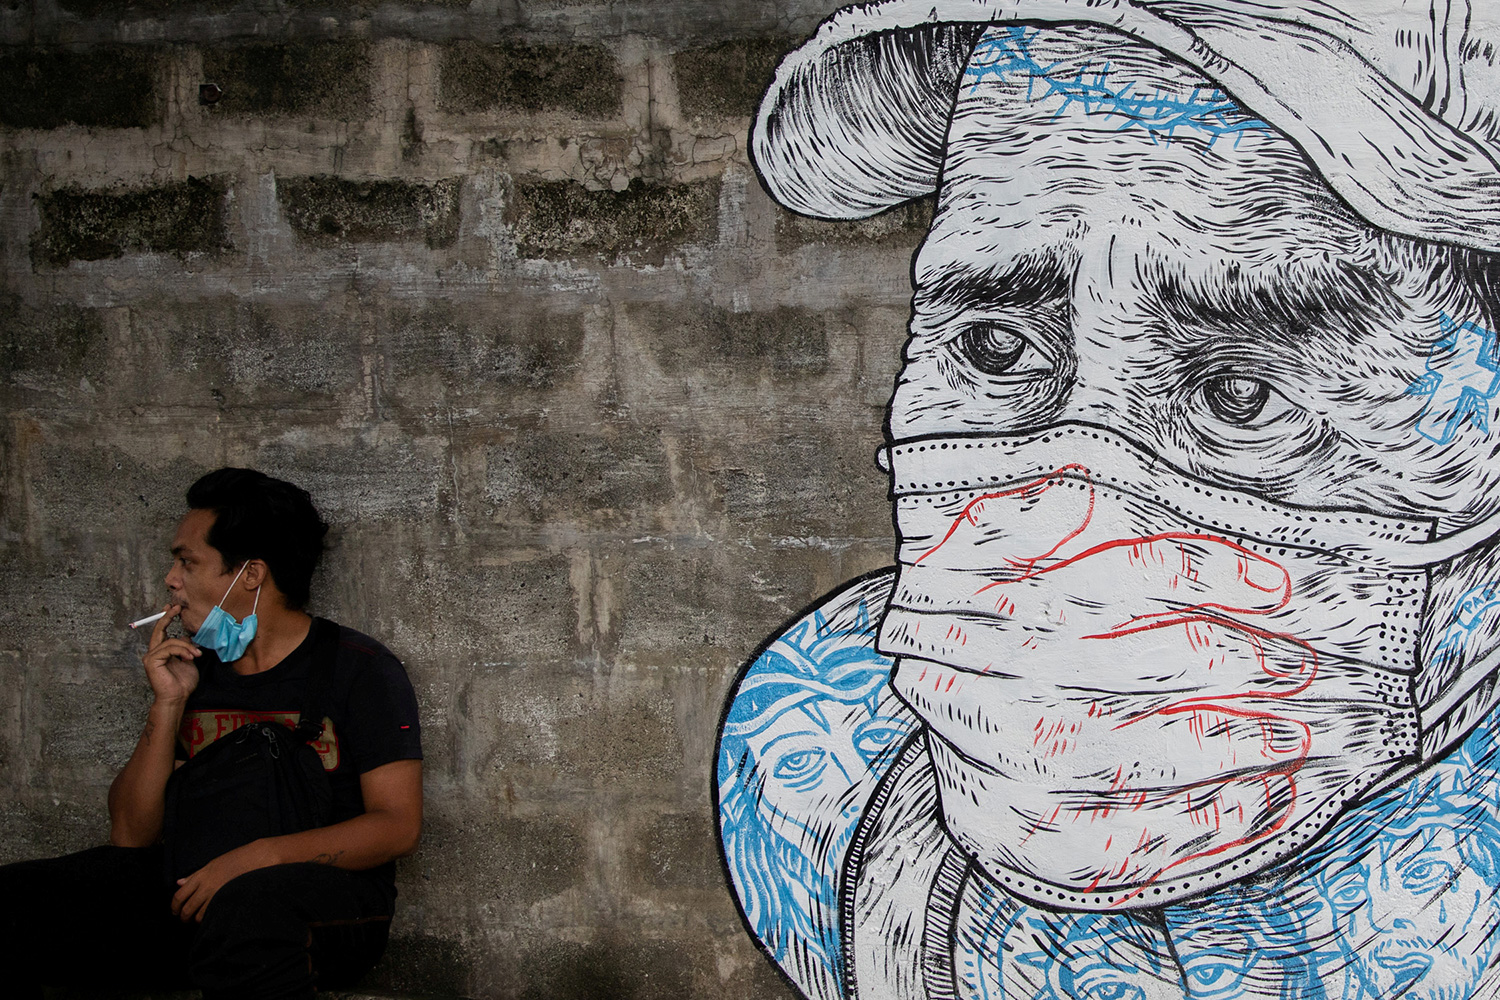 A man smokes a cigarette next to a mural of a man wearing a protective mask amid the coronavirus disease (COVID-19) outbreak in Quezon City, Metro Manila, Philippines, July 30, 2020. The photo shows a man wearing a mask pulled down around his chin smoking. Next to him is a mural of a worried-looking man in a mask. REUTERS/Eloisa Lopez